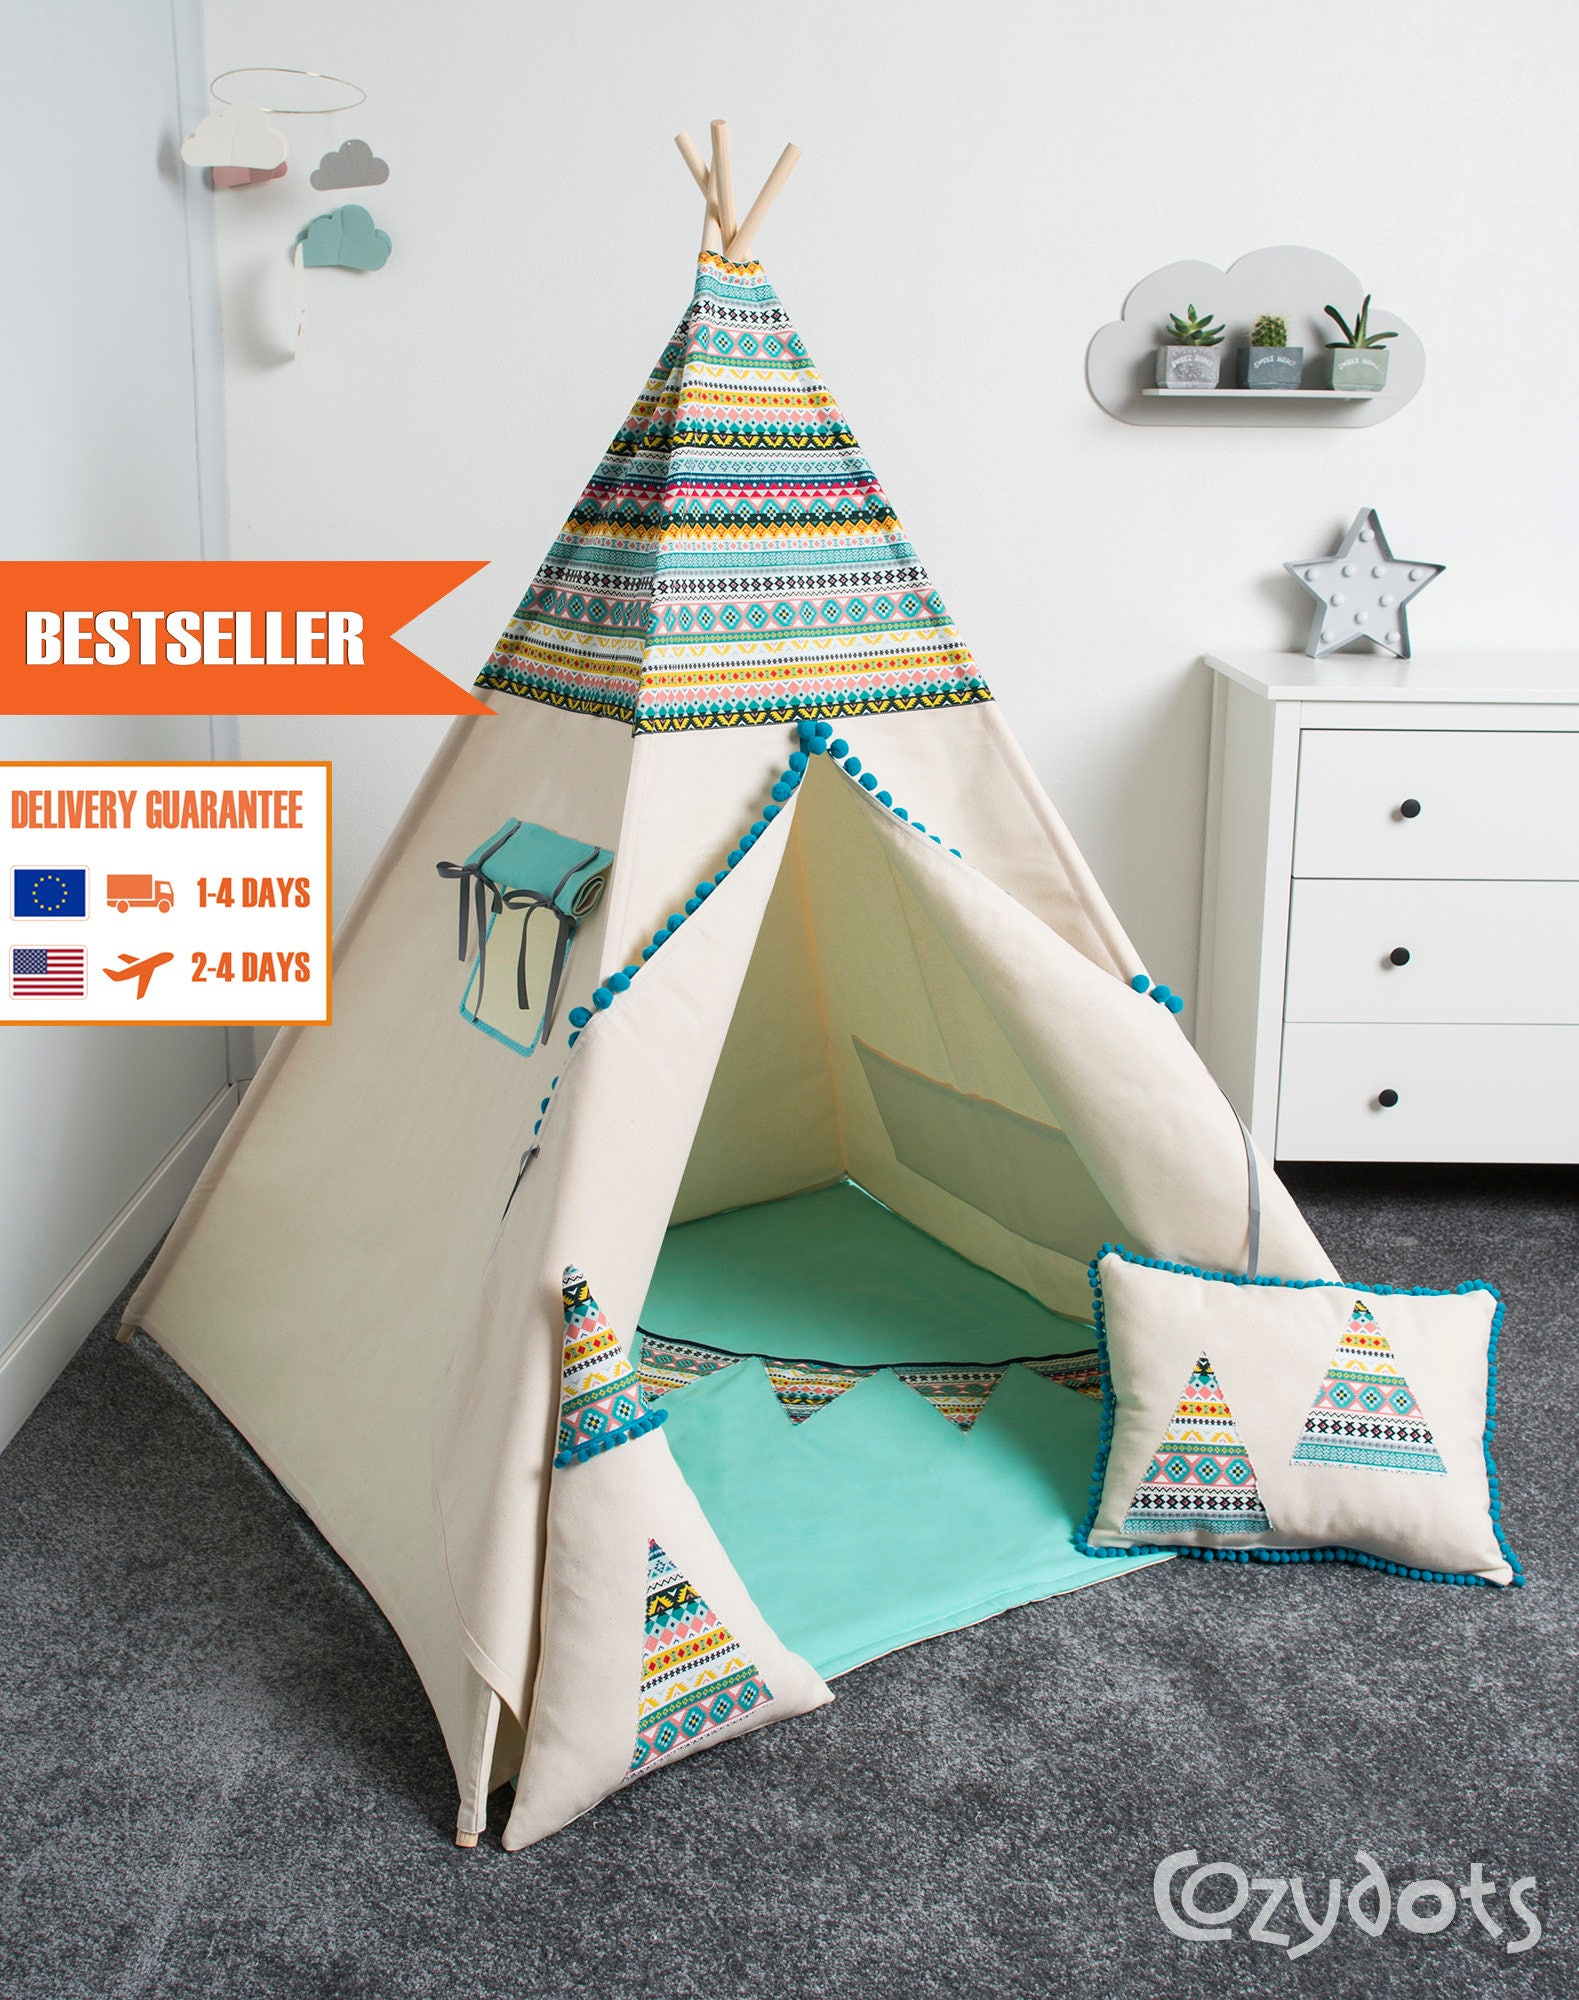 tente tipi tente indienne tente teepee tipi pour enfant etsy. Black Bedroom Furniture Sets. Home Design Ideas